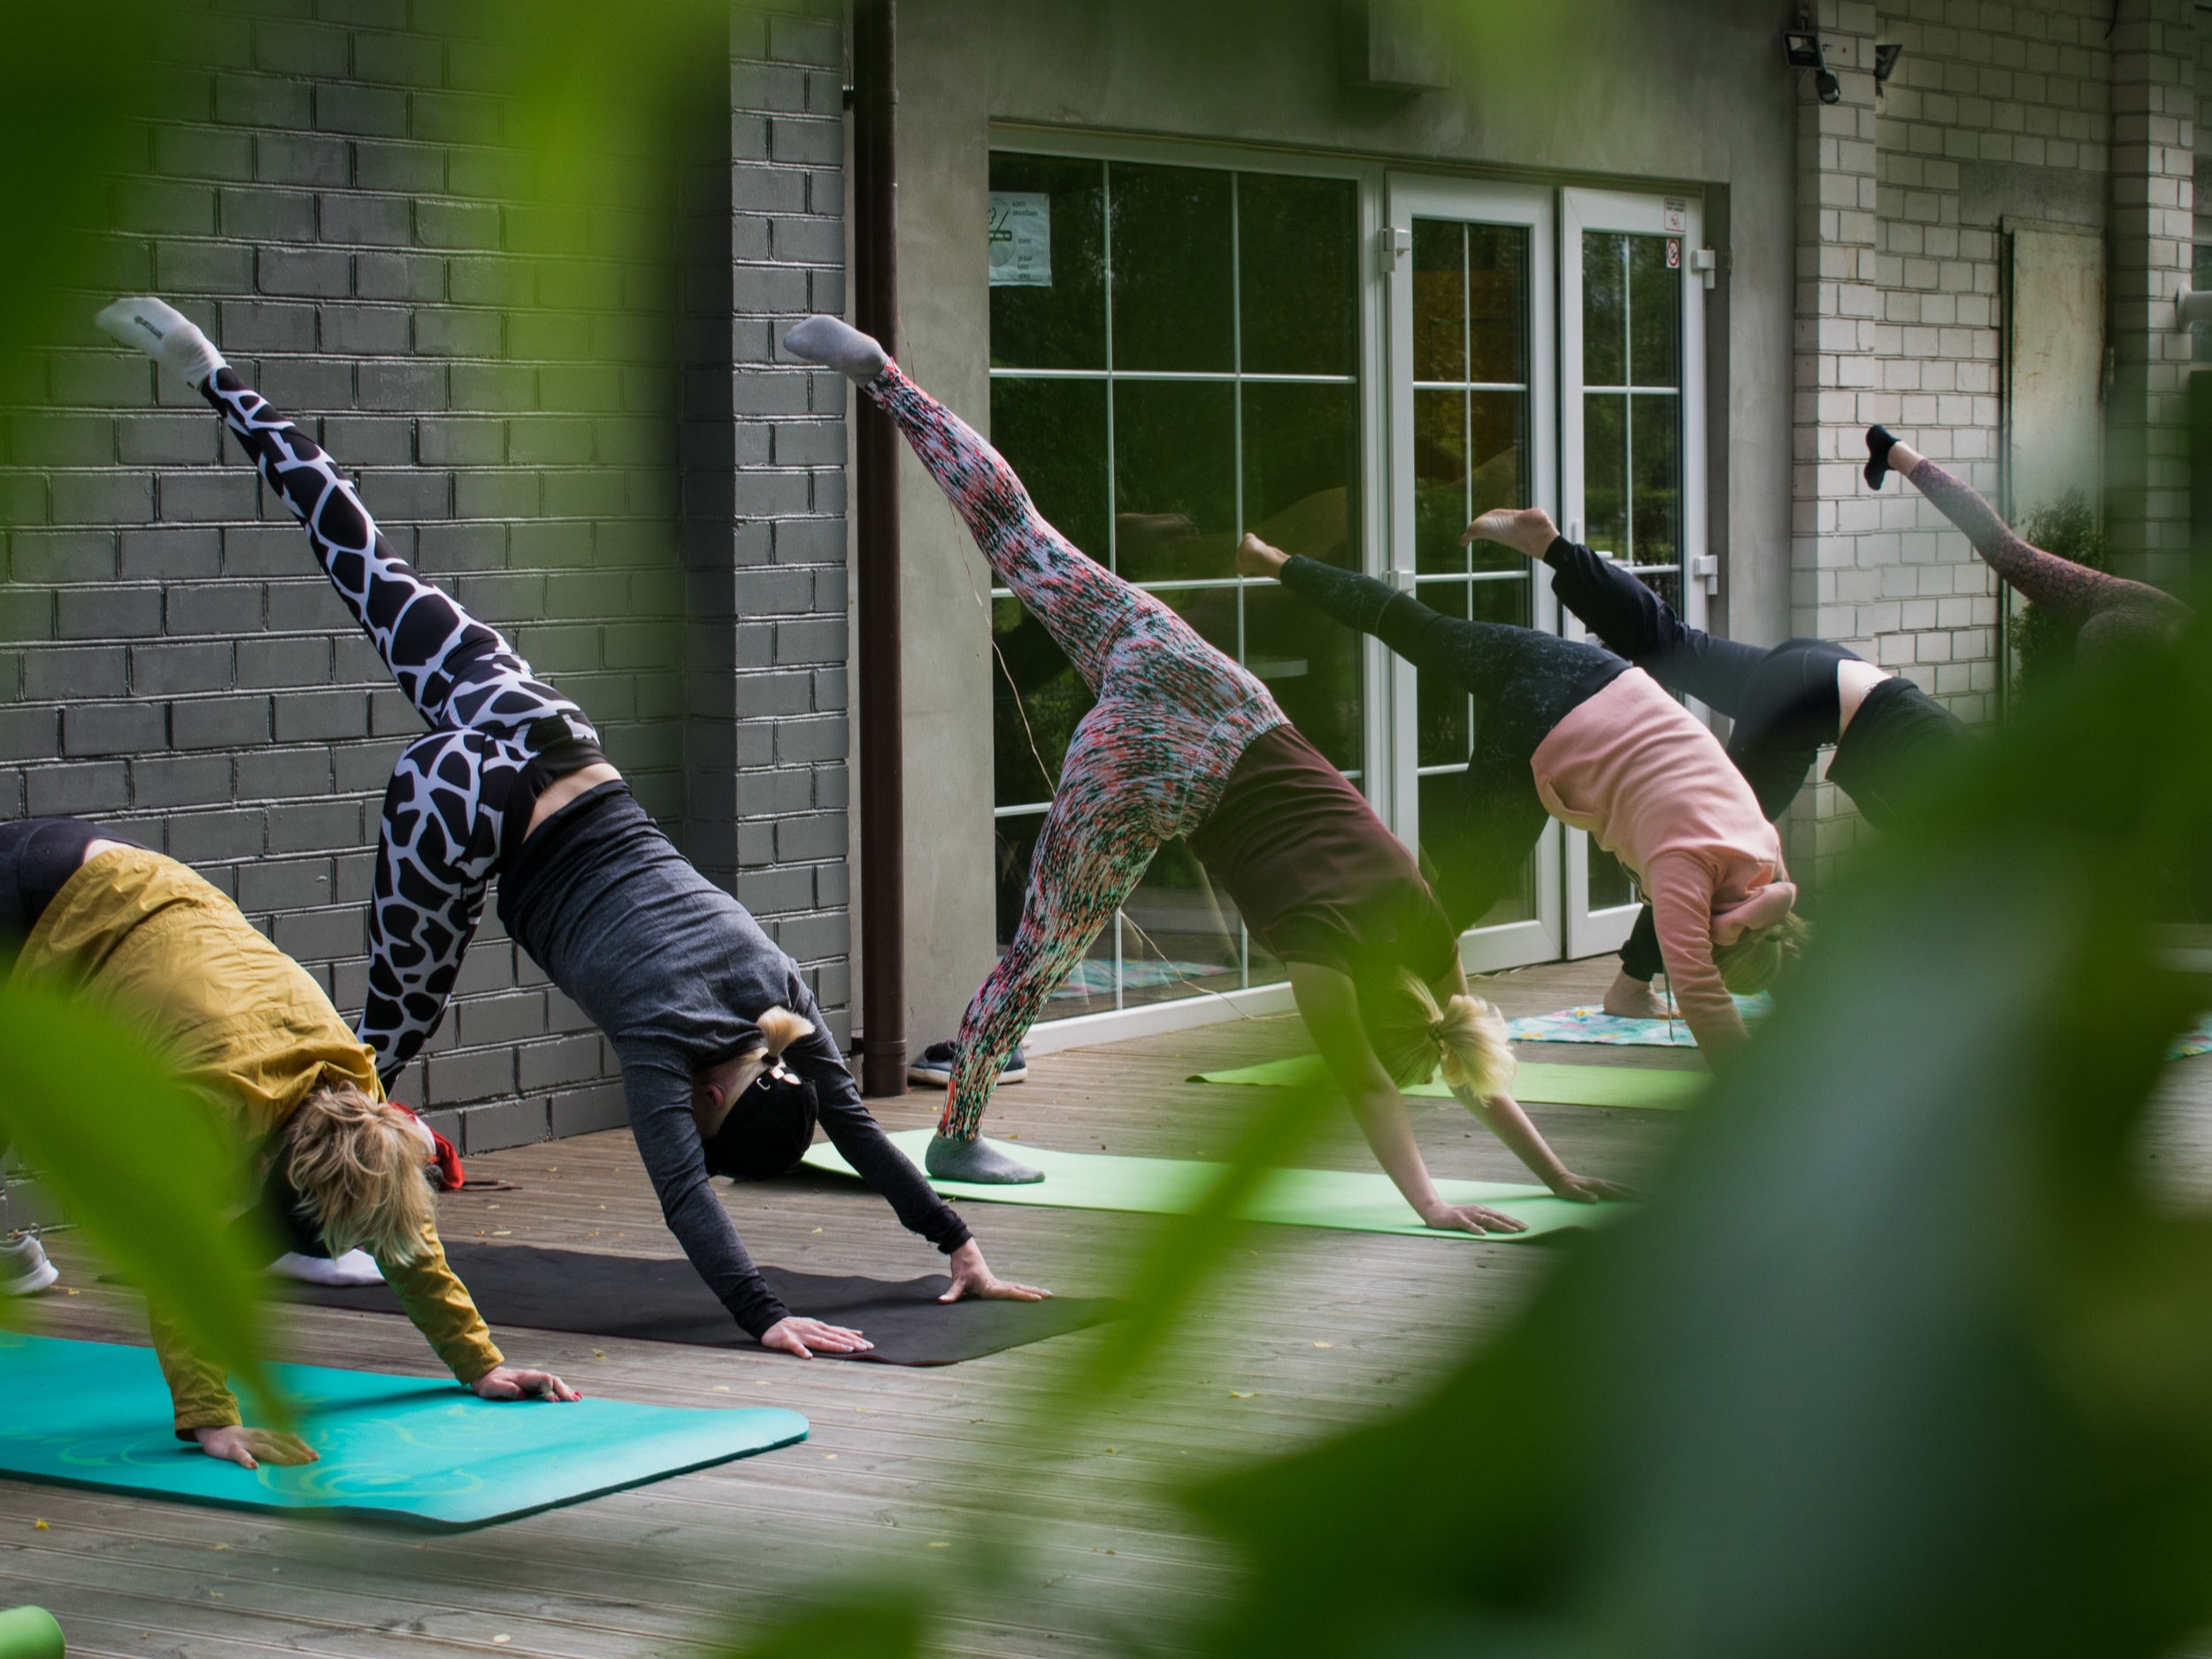 PRIVATE GROUP YOGA - Please contact us with your requirements and we will be happy to reply to you to discuss your needs. we can provide a one time workshop, a short course of classes or long term regular classes.Tel: 09053174121email: setagayayogastudio@gmail.com